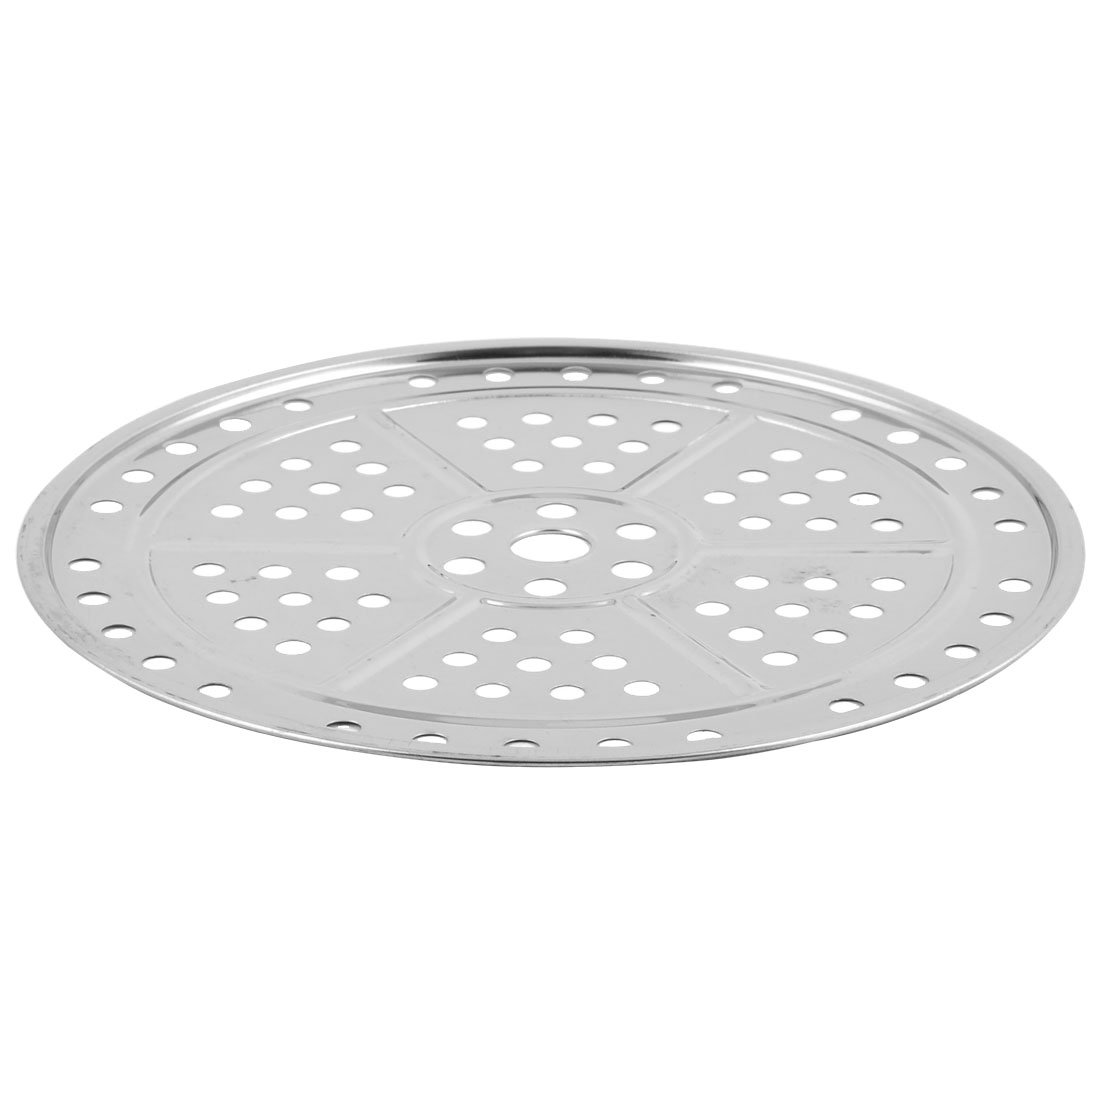 uxcell Stainless Steel Kitchen Cooking Baking Pan Steaming Food Stockpot Plate Steamer Rack 26cm Dia